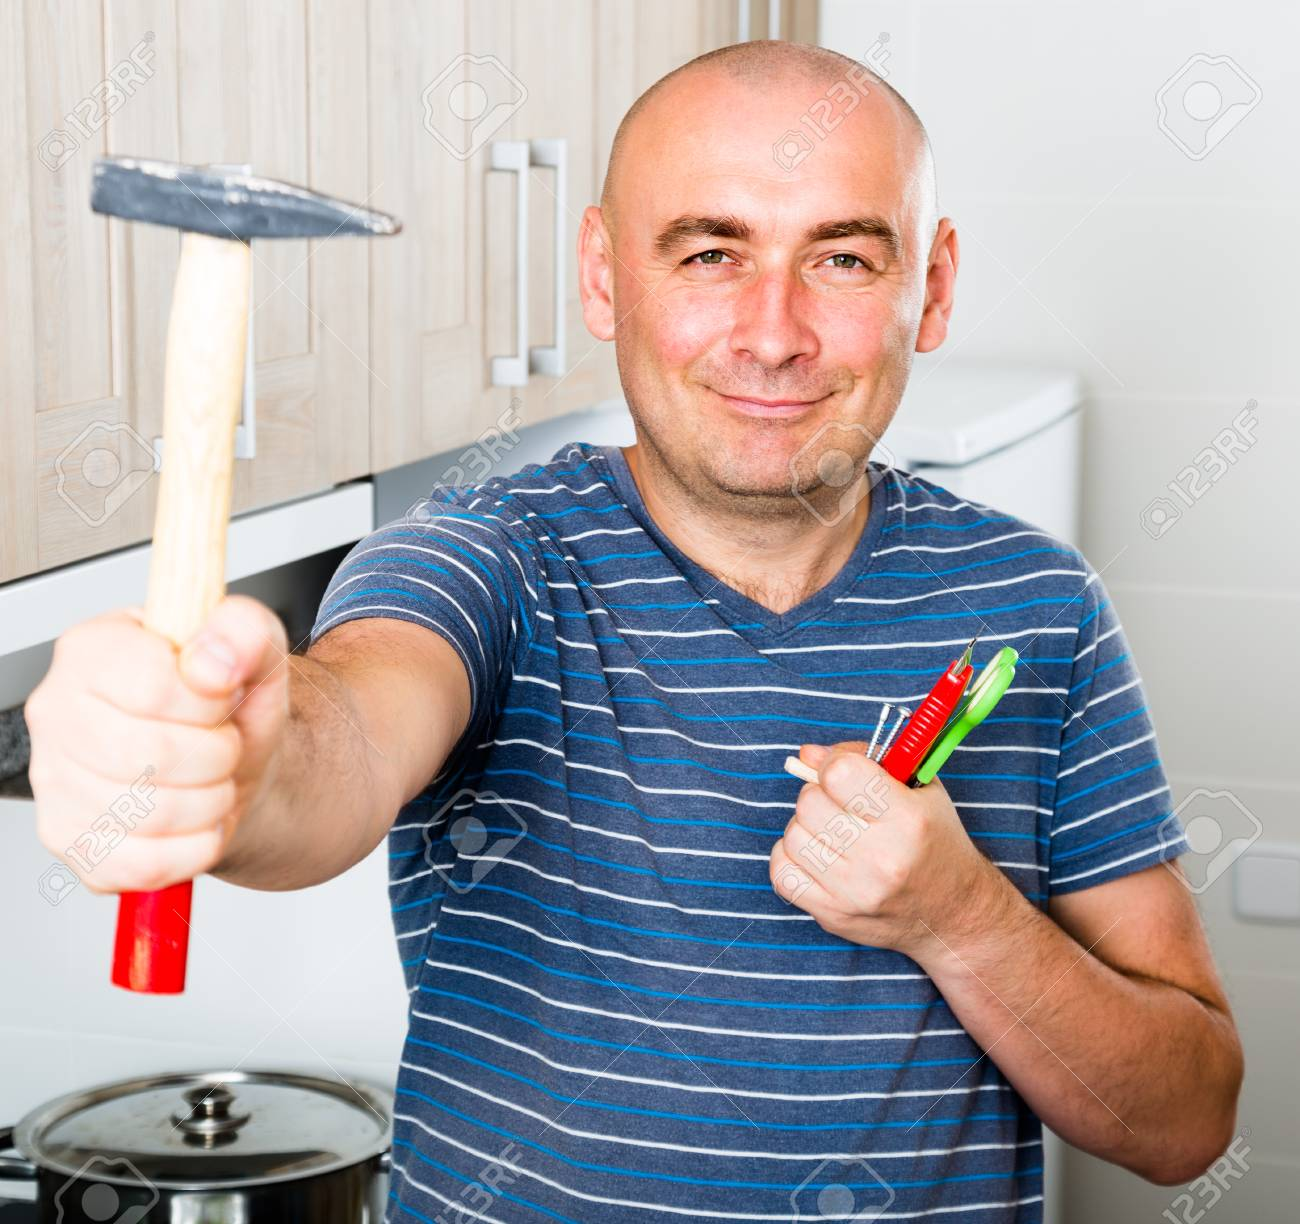 Ordinary Guy Posing With A Hammer In His Hands Stock Photo, Picture ...